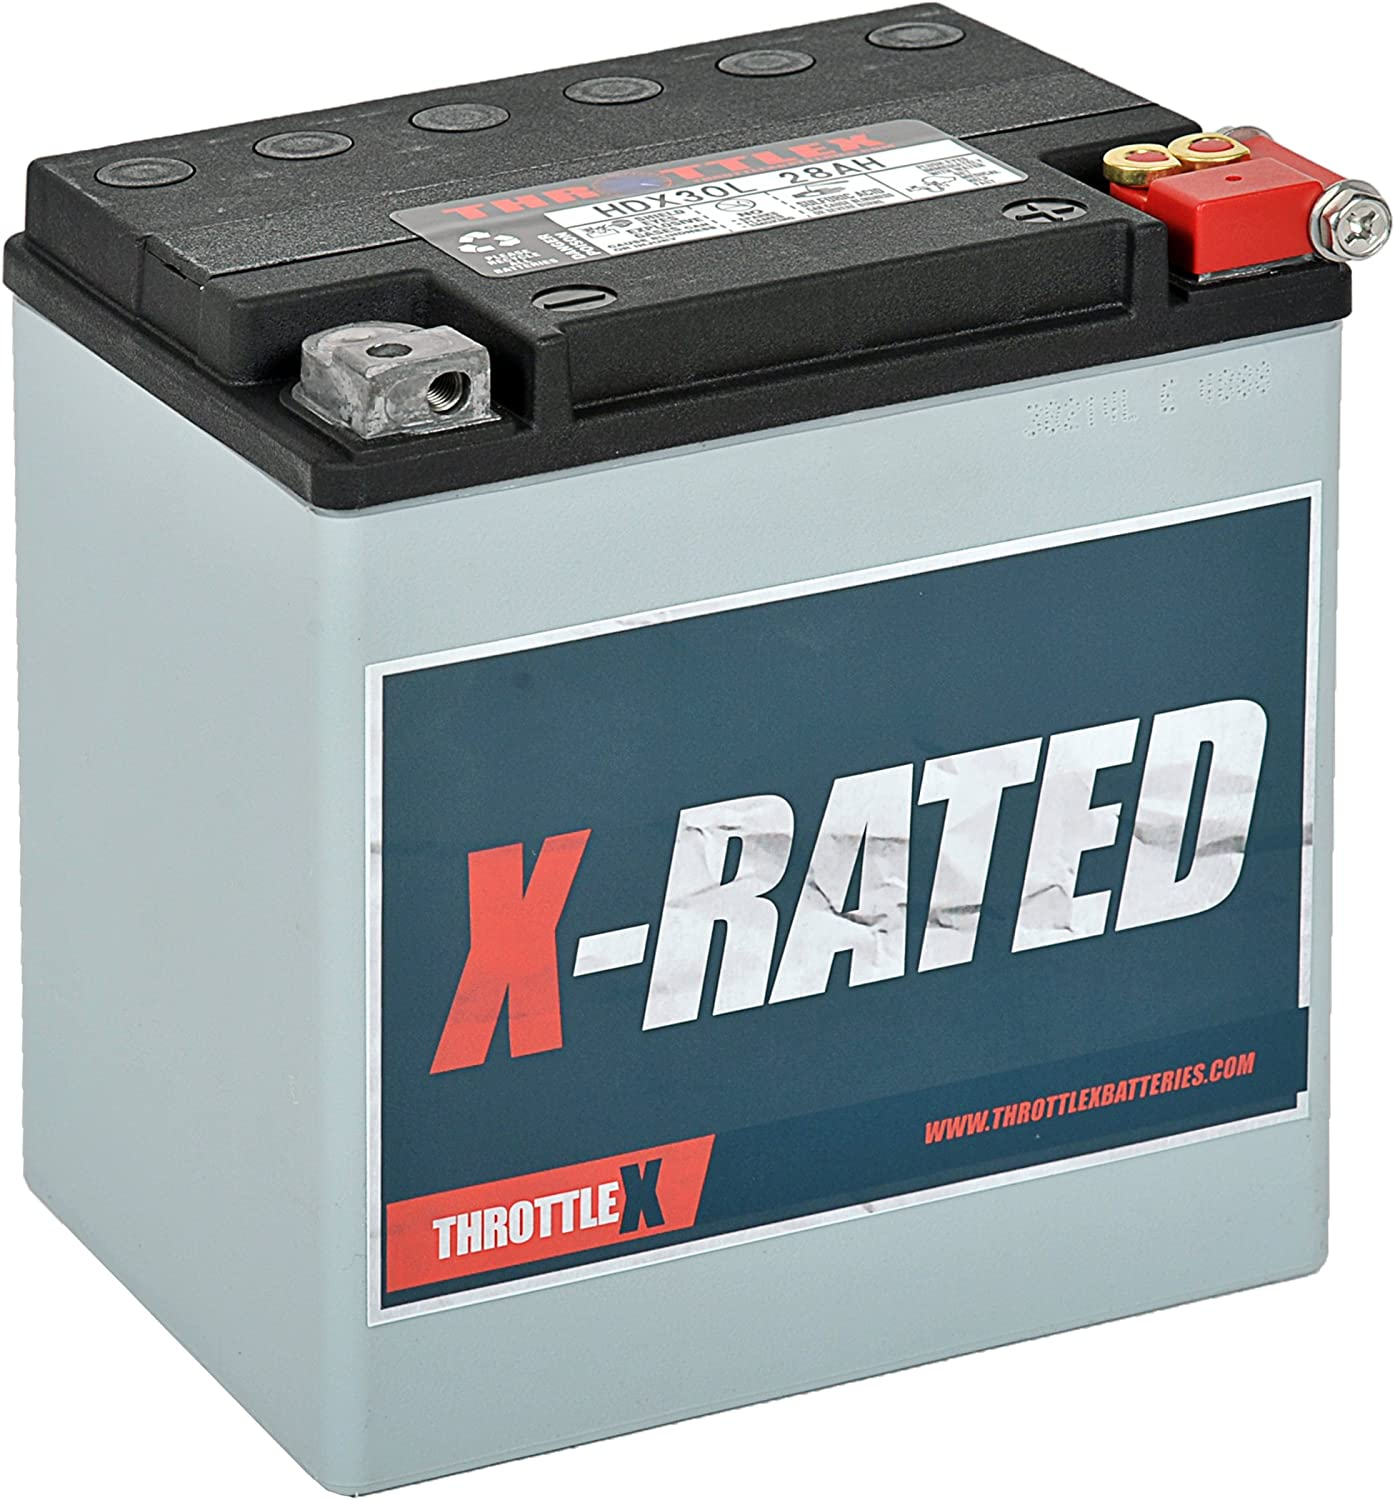 Harley Davidson Battery >> Throttlex Hdx30l Made In America Harley Davidson Replacement Motorcycle Battery